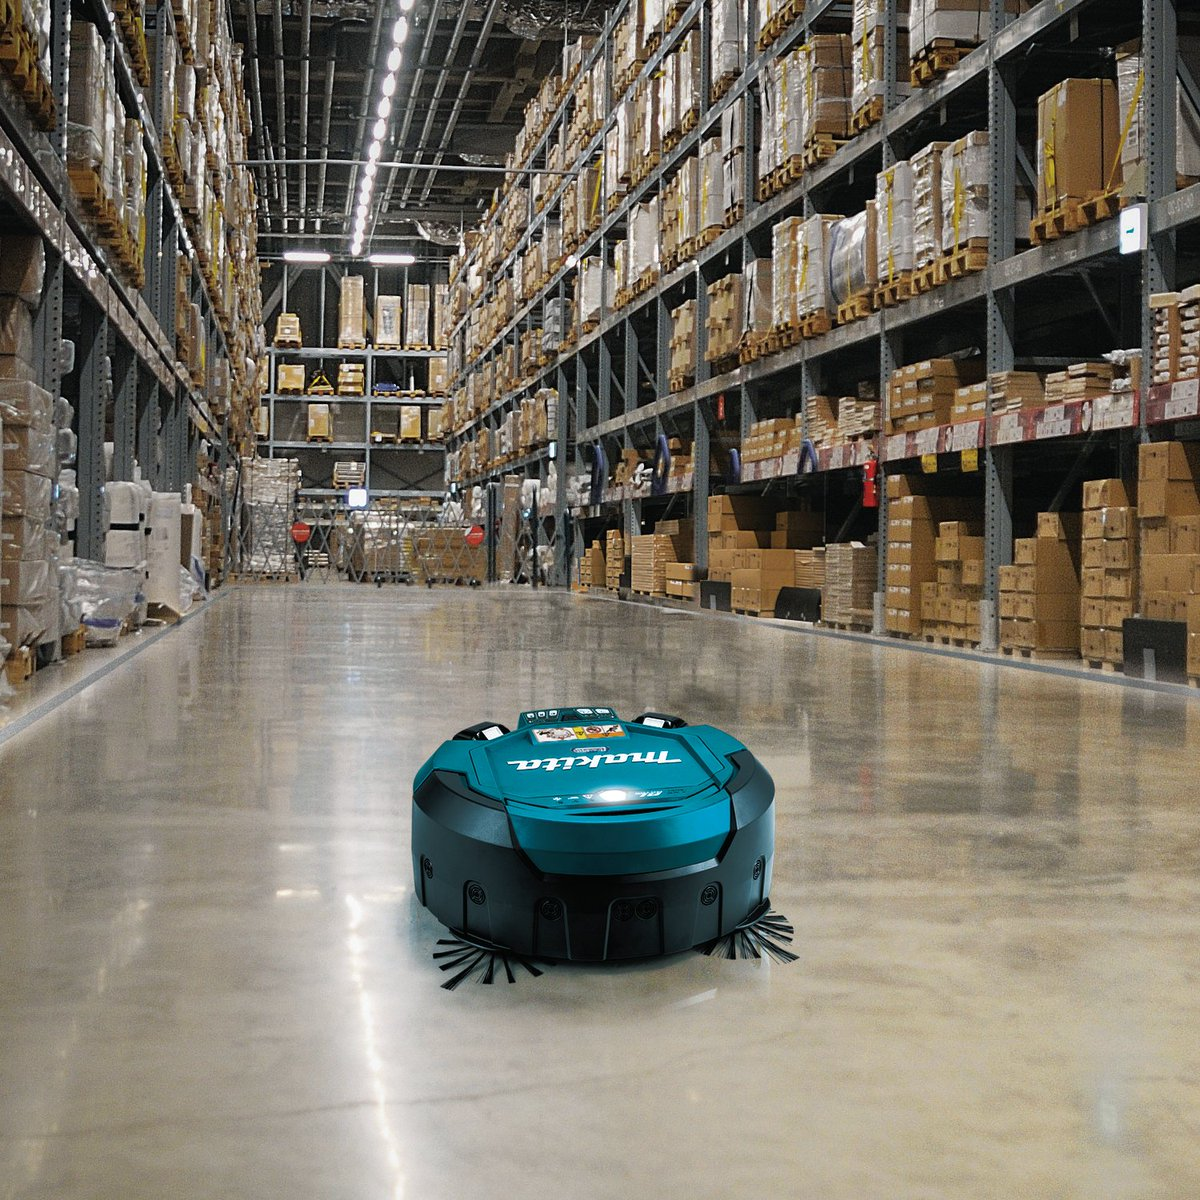 The 18V X2 LXT Brushless Robotic Vacuum is a cordless solution that automatically cleans large flooring spaces in such as warehouses, lobbies, banquet halls, office buildings, manufacturing facilities, gyms, and much more!  #makitausa #makitatools #drc200pt